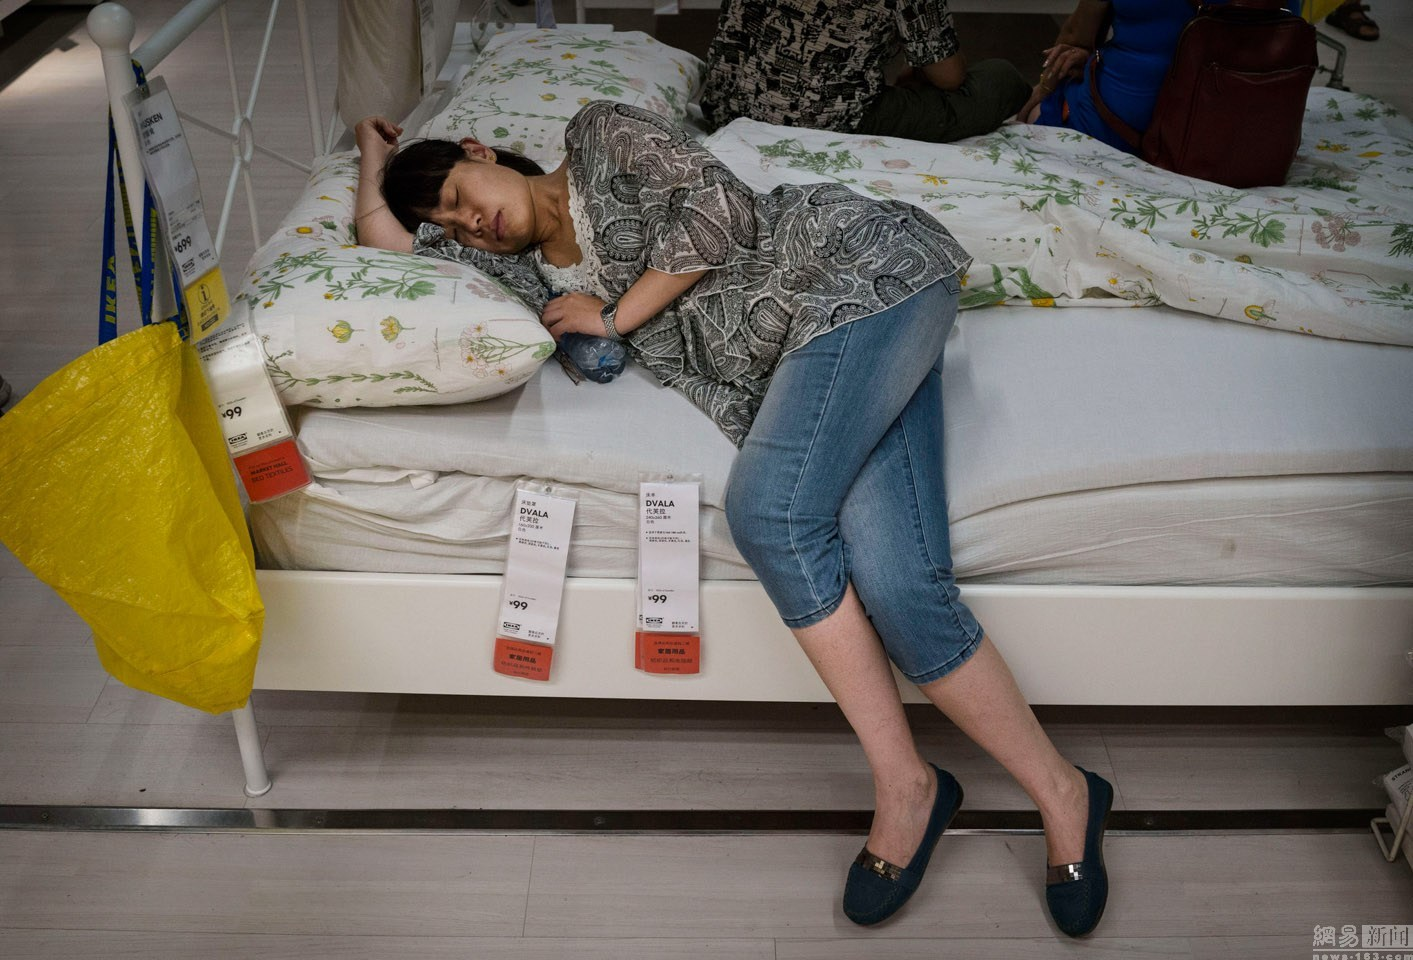 Ikea Shanghai frowns on elderly daters who occupy cafeteria